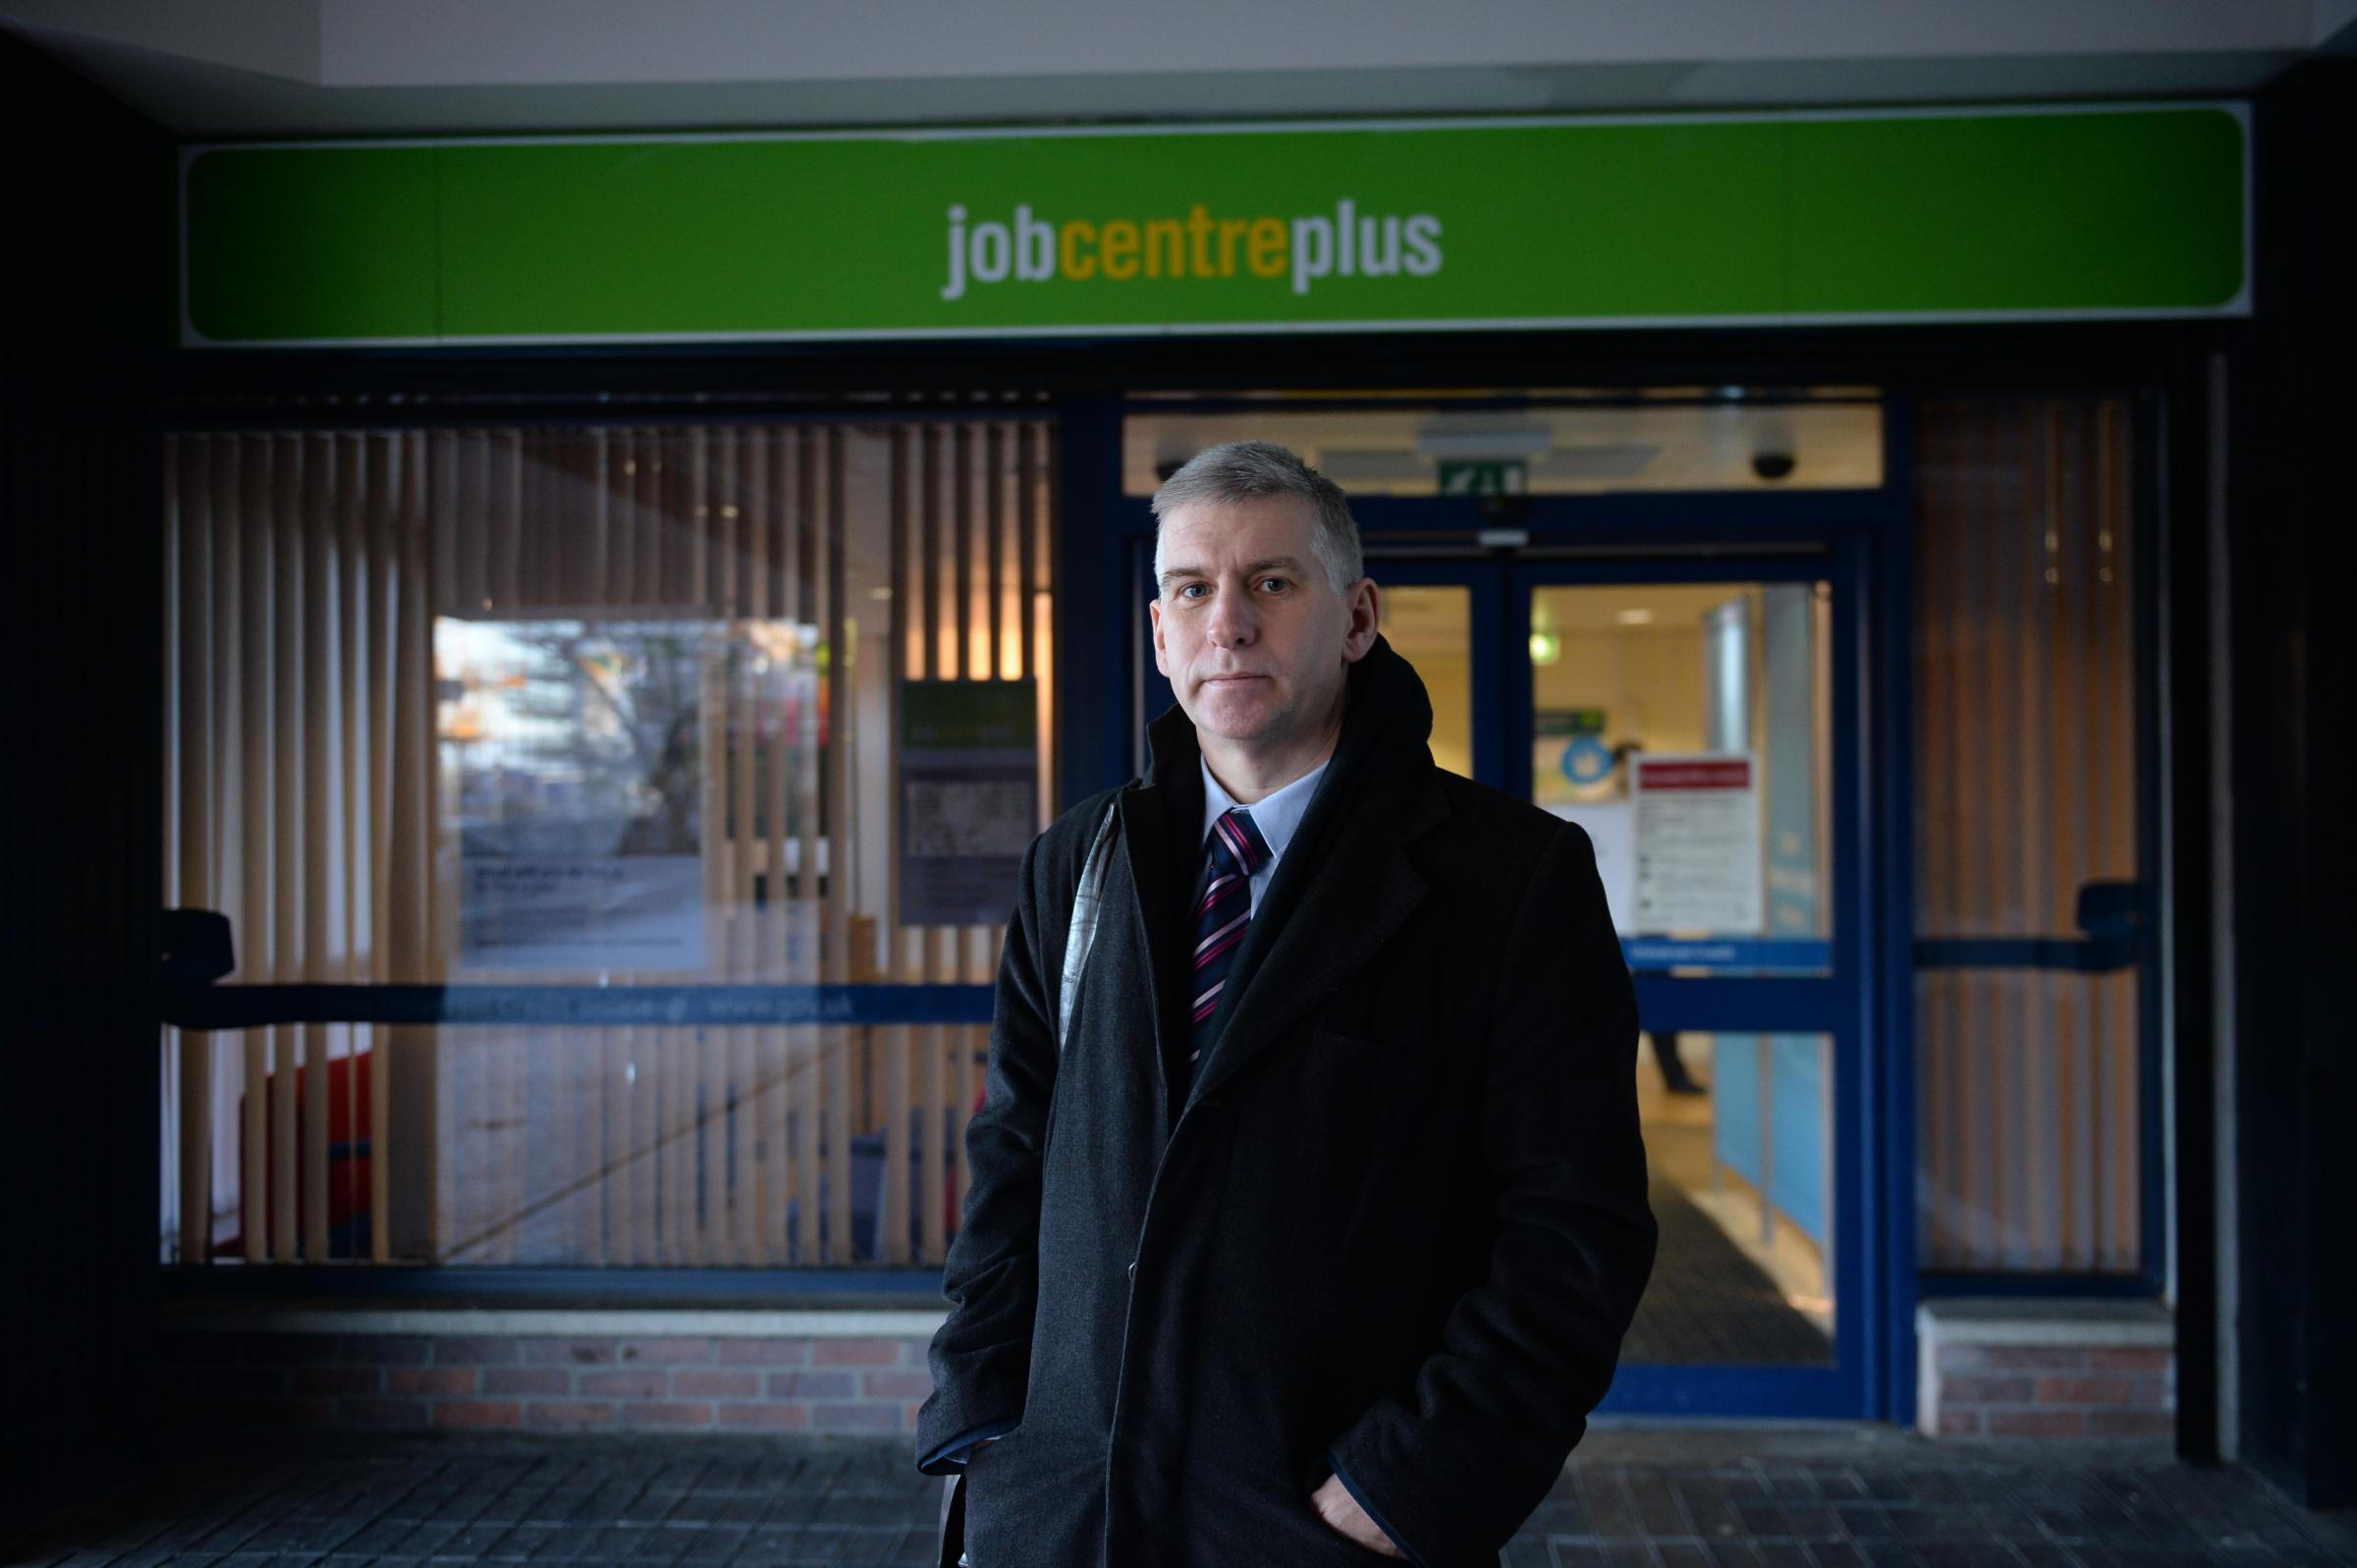 STEWART PATERSON'S Politics Week: Jobcentre closures decision is lazy opportunitstic cost cutting